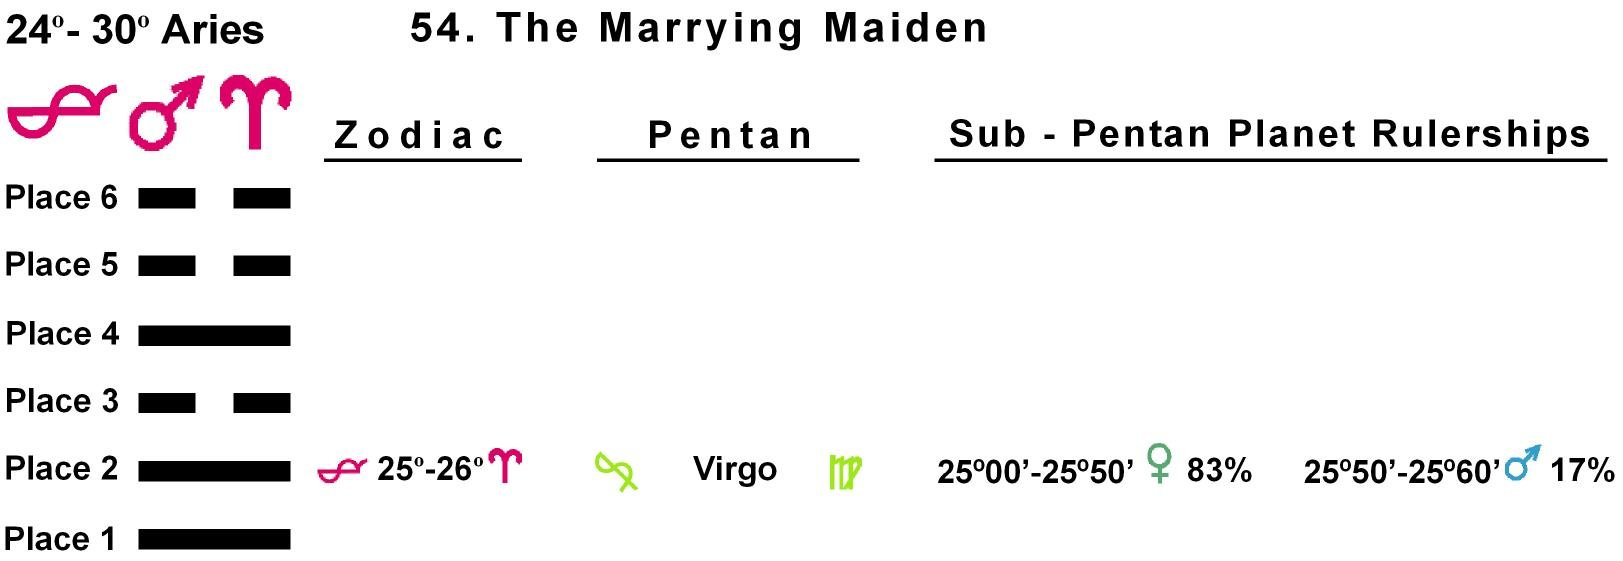 Pent-lines-01AR 25-26 Hx-54 Marrying Maiden